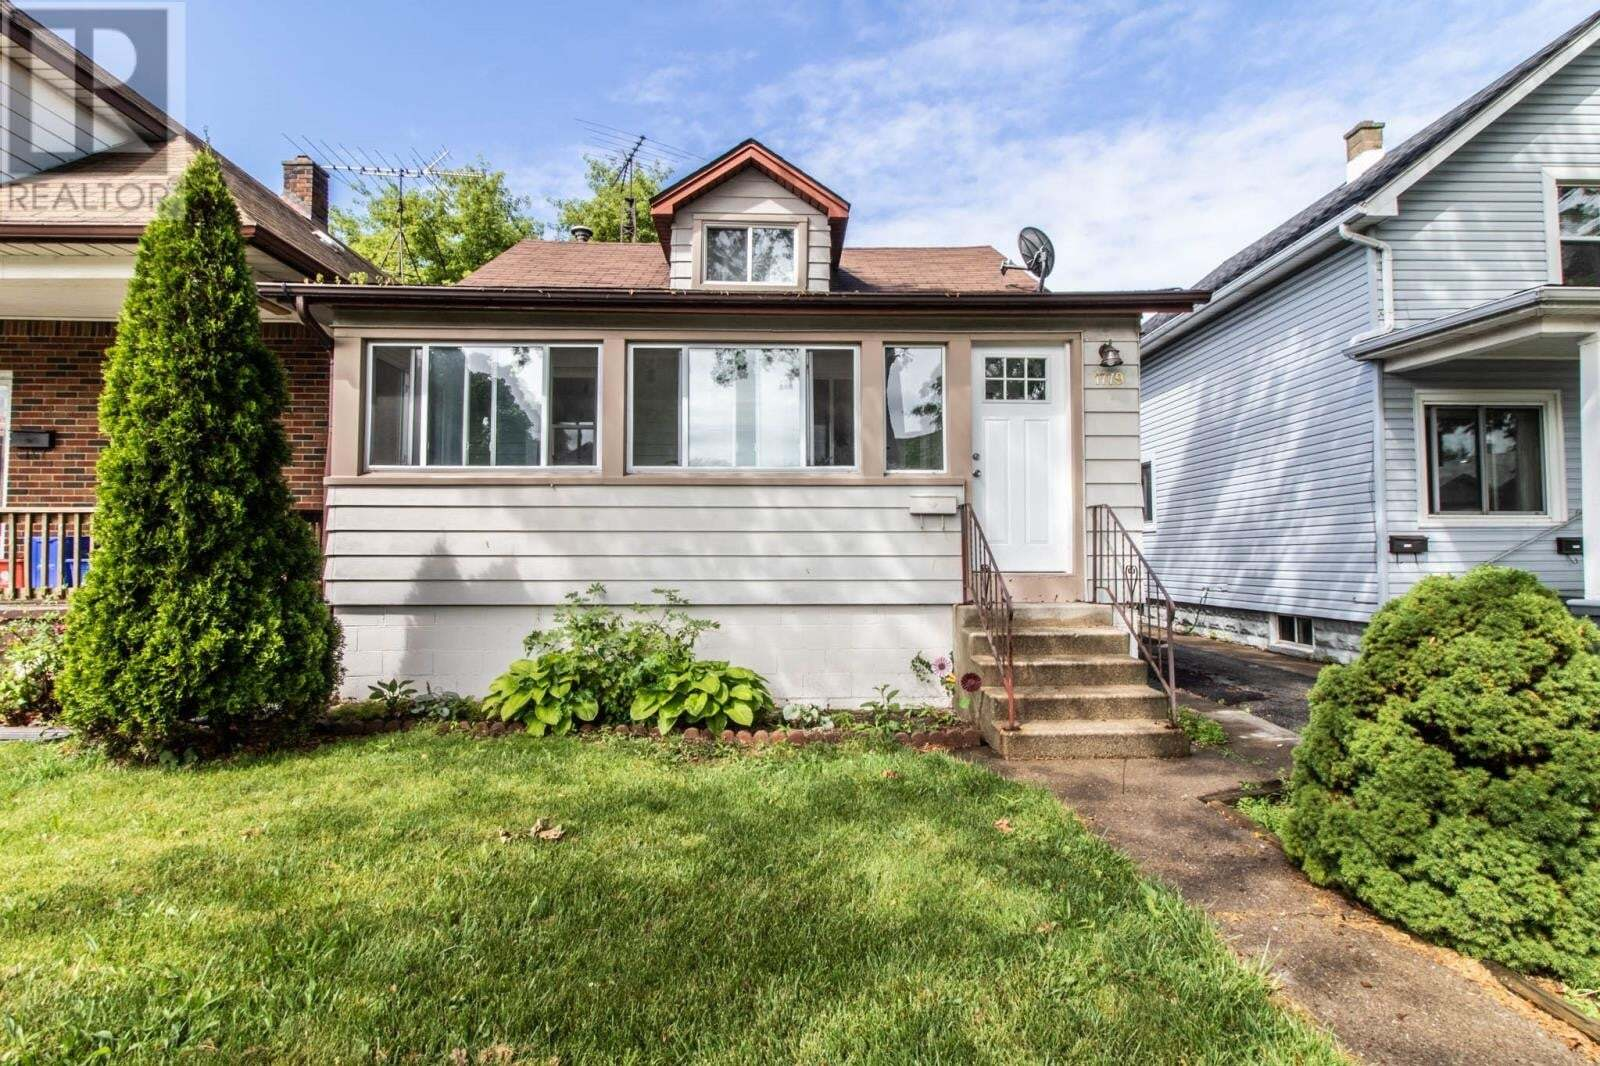 House for sale at 1779 Cadillac  Windsor Ontario - MLS: 20007466